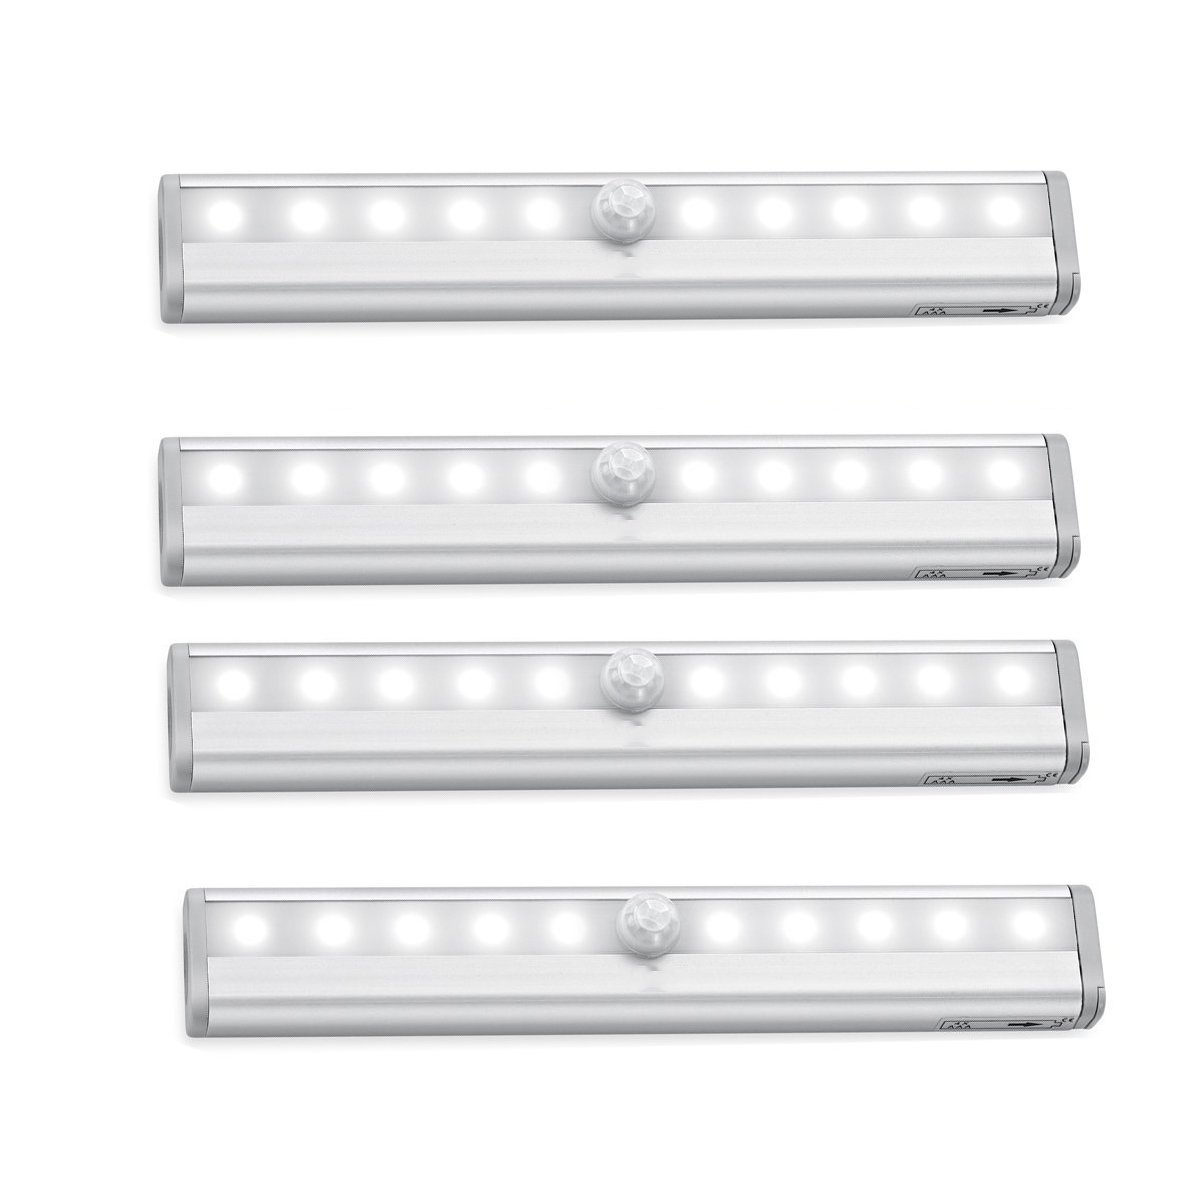 Rayhome 10-LED Motion Sensor Closet Light DIY Stick-on Anywhere Activated Light Bar with Magnetic Strip Battery-Powered Super Bright White Night Lights (10Led4Pack)